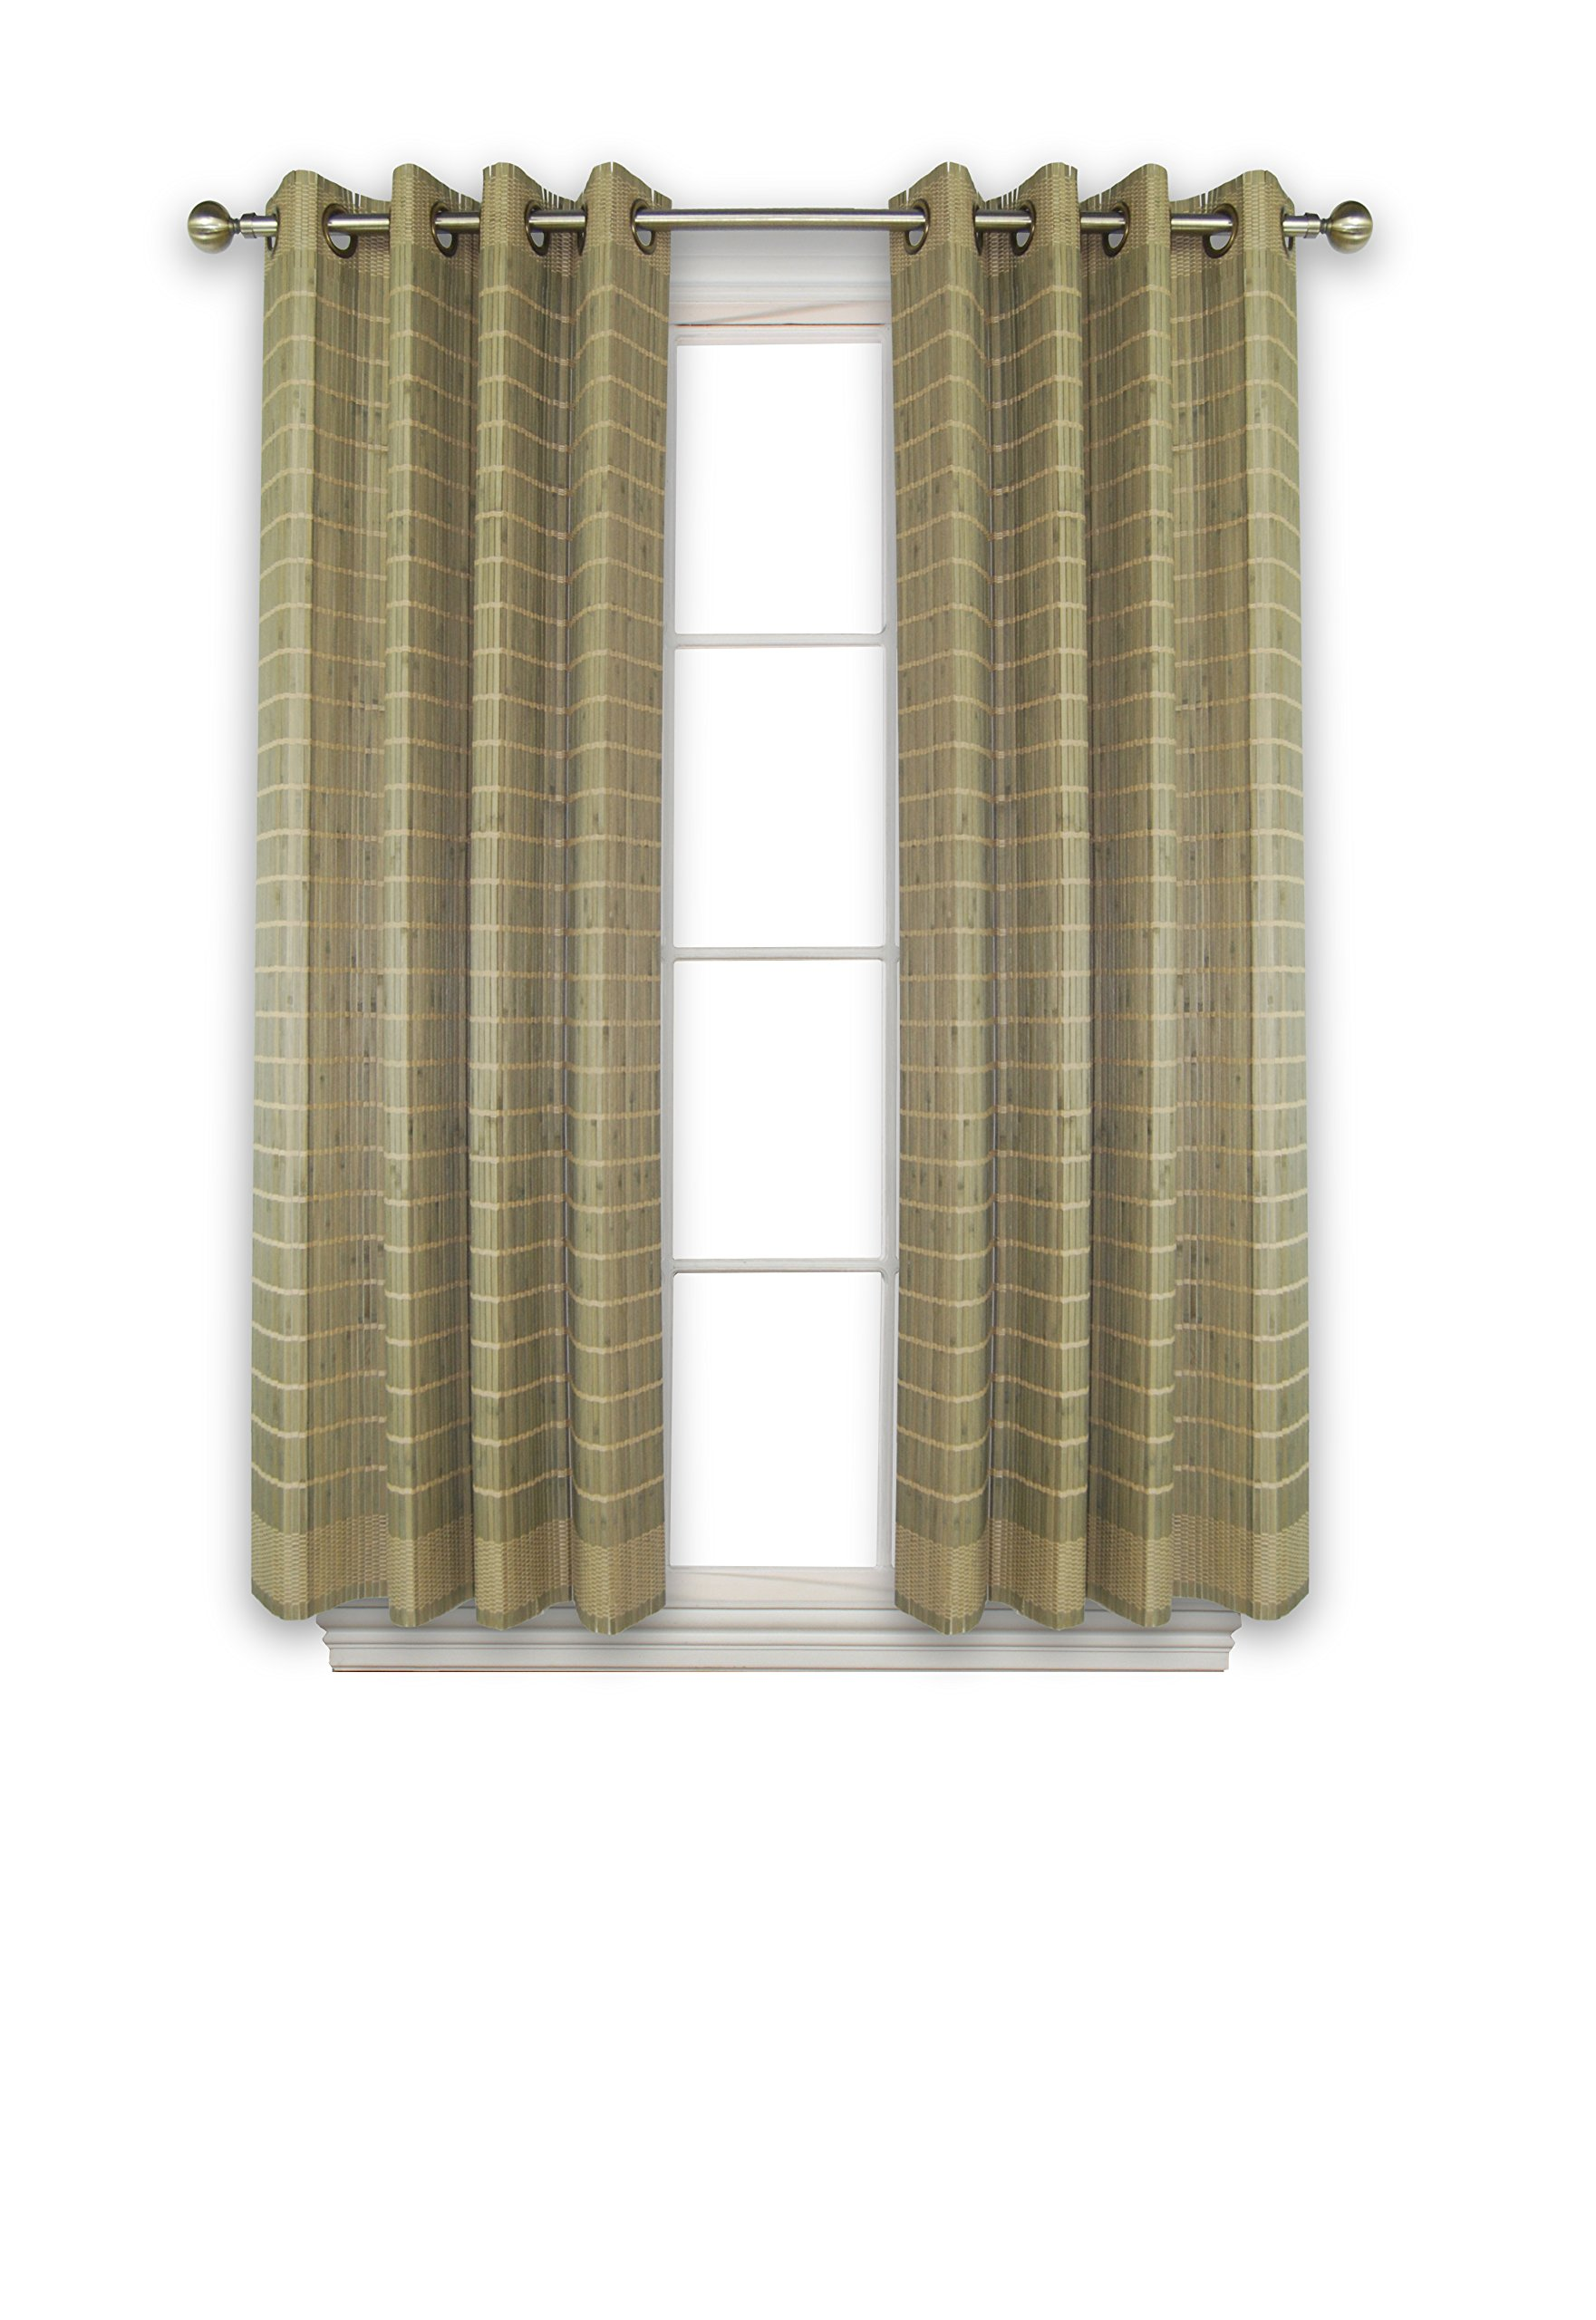 Versailles Home Fashions BPU144263-25 Bamboo Wood Curtain Panel with Grommets, 42'' x 63'', Driftwood